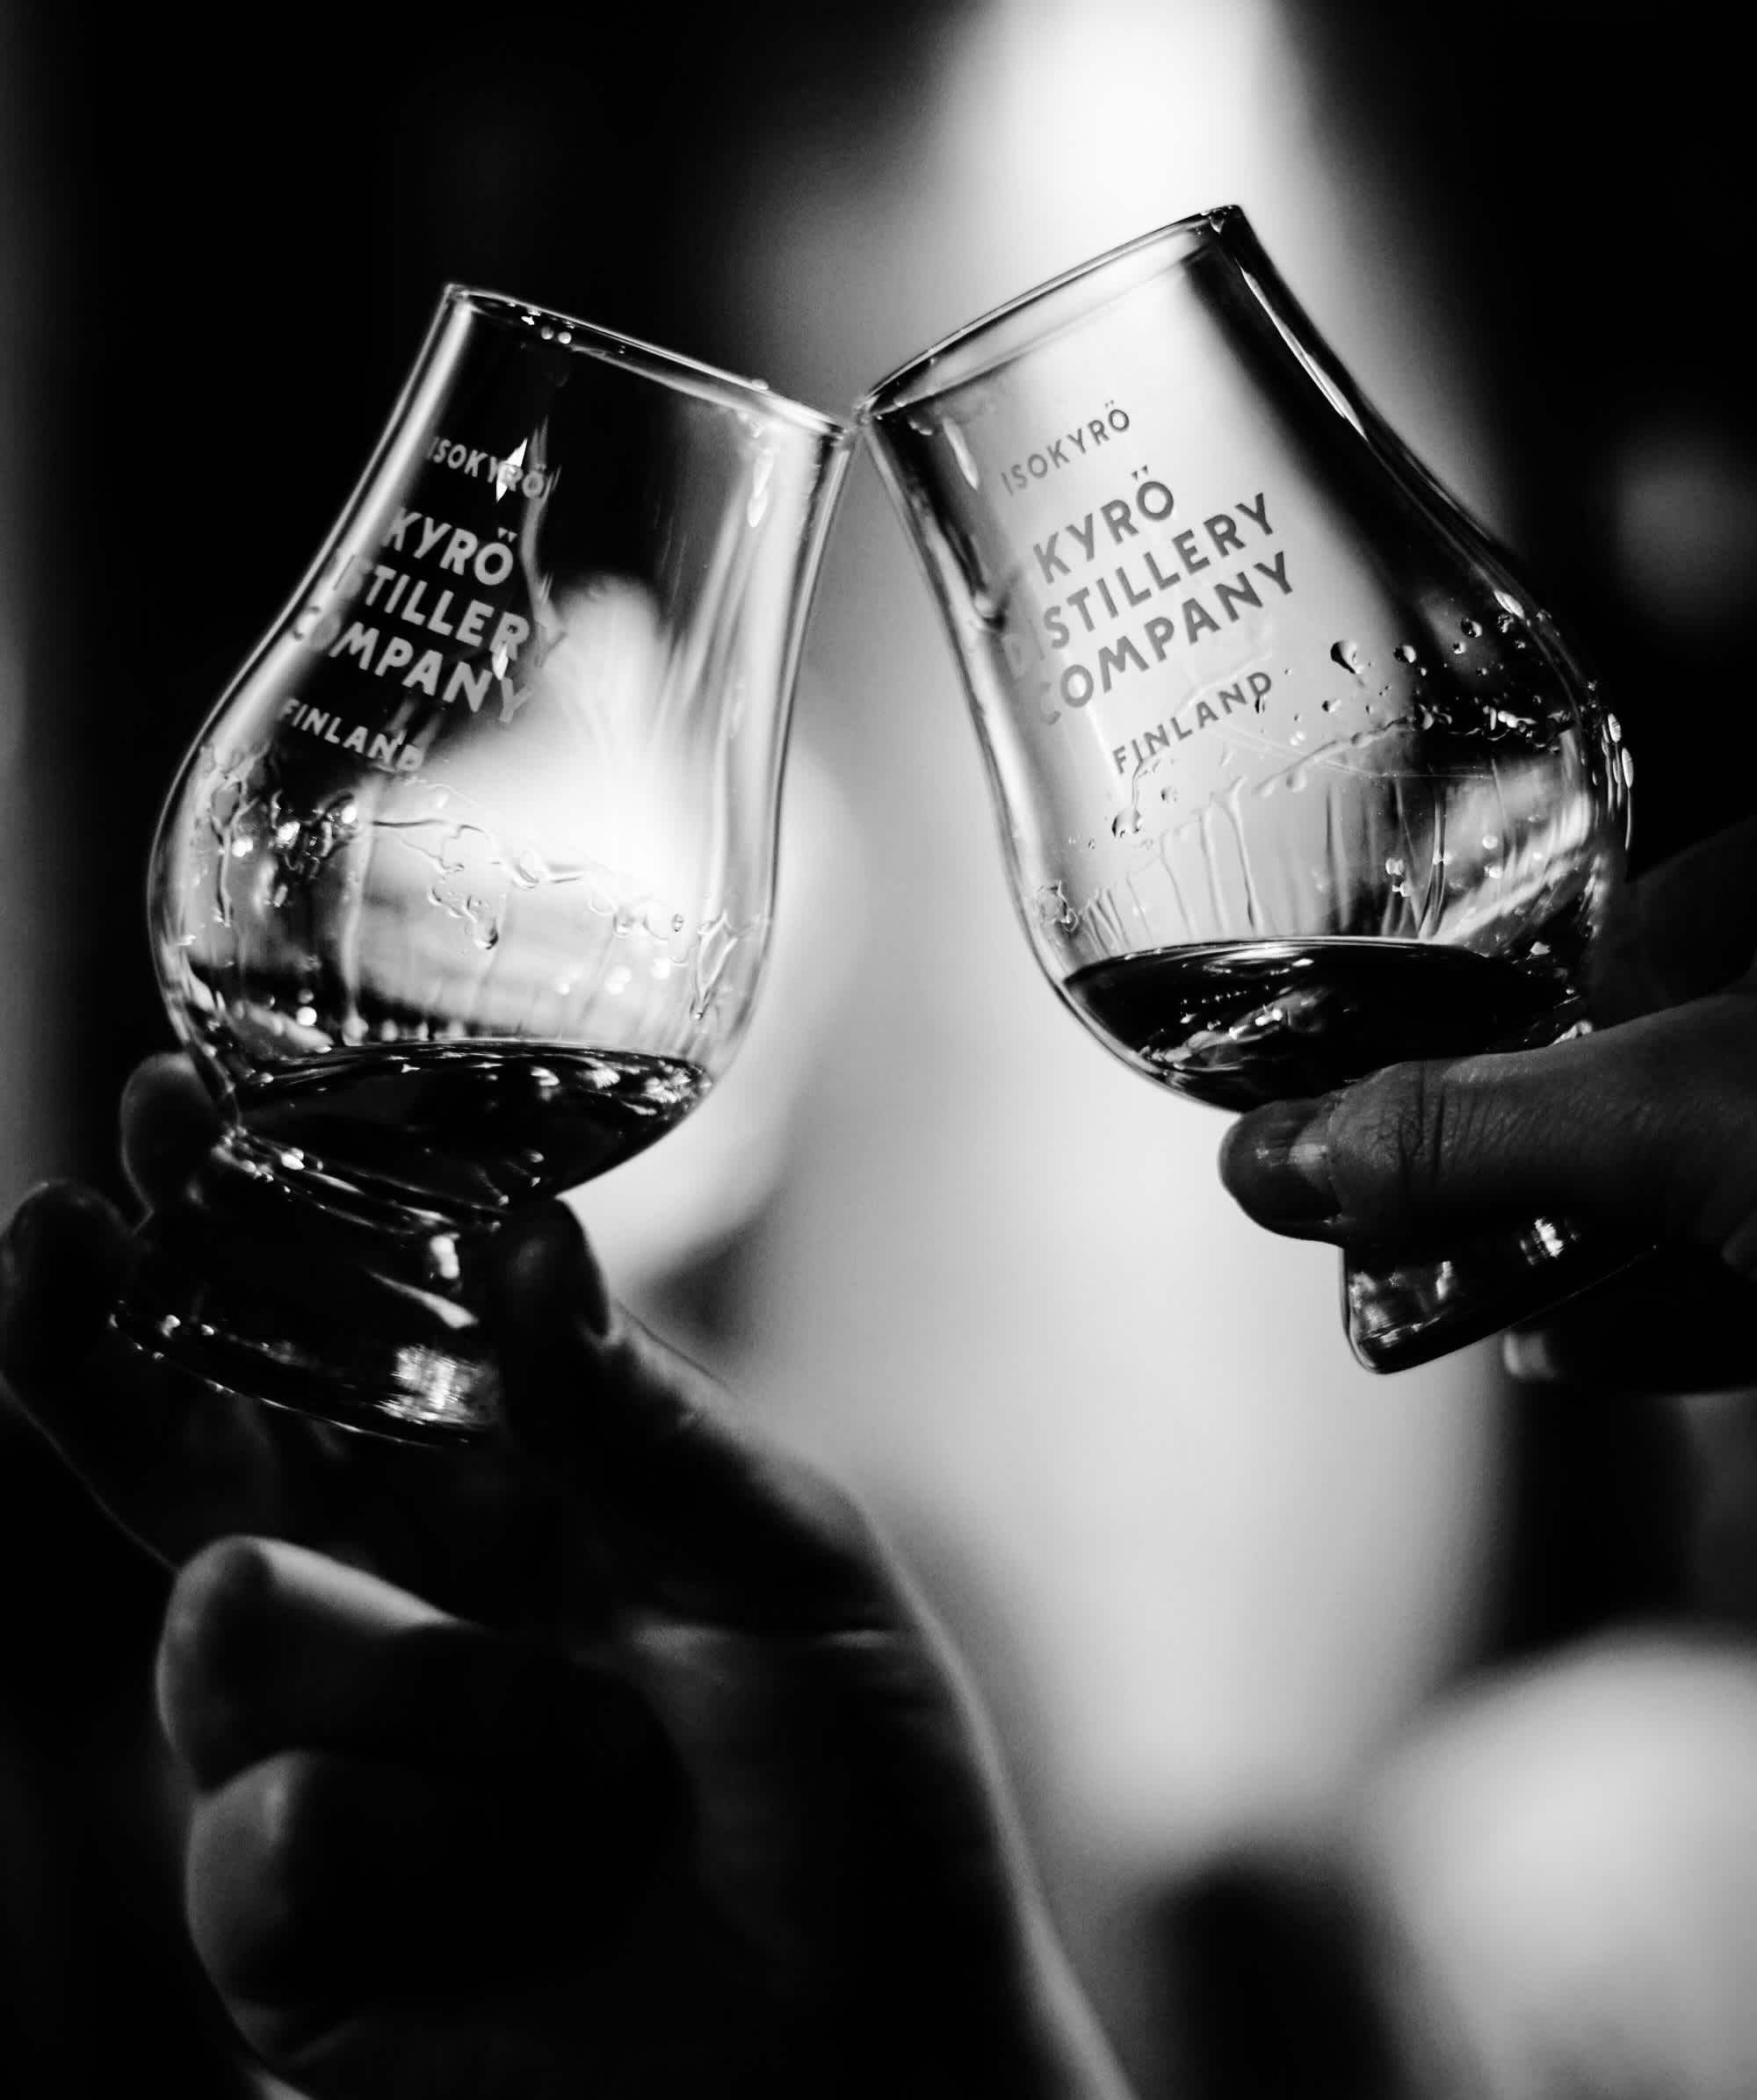 Black and white image of two Kyrö-branded Glencairn tasting glasses filled with whisky cheersing each other.